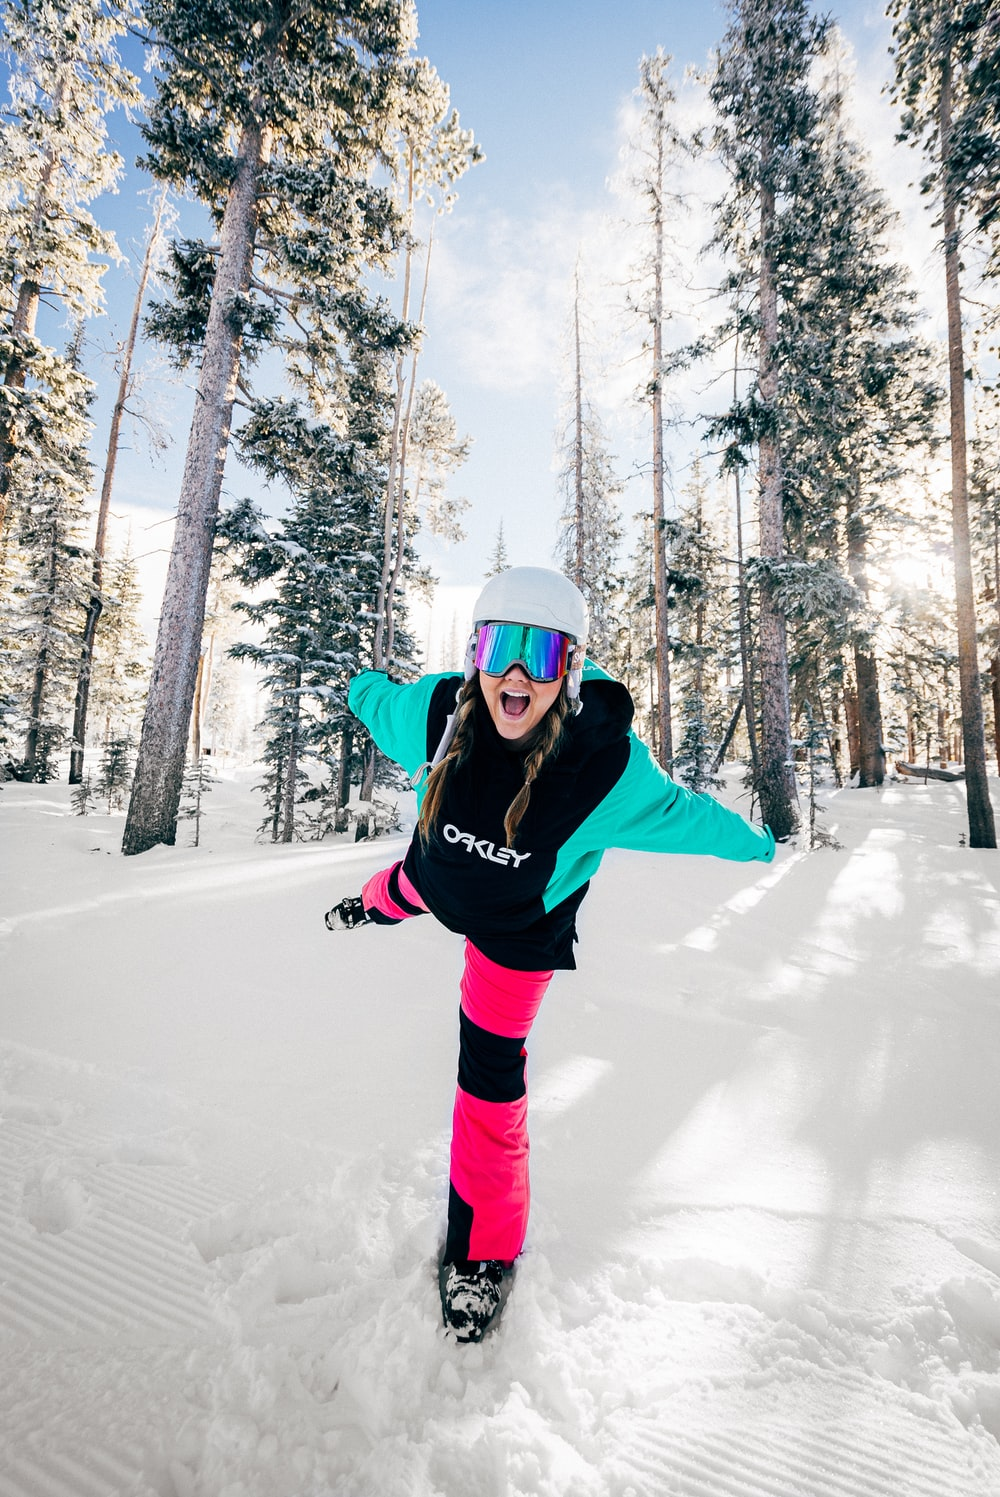 woman in black jacket and pink pants standing on snow covered ground during daytime